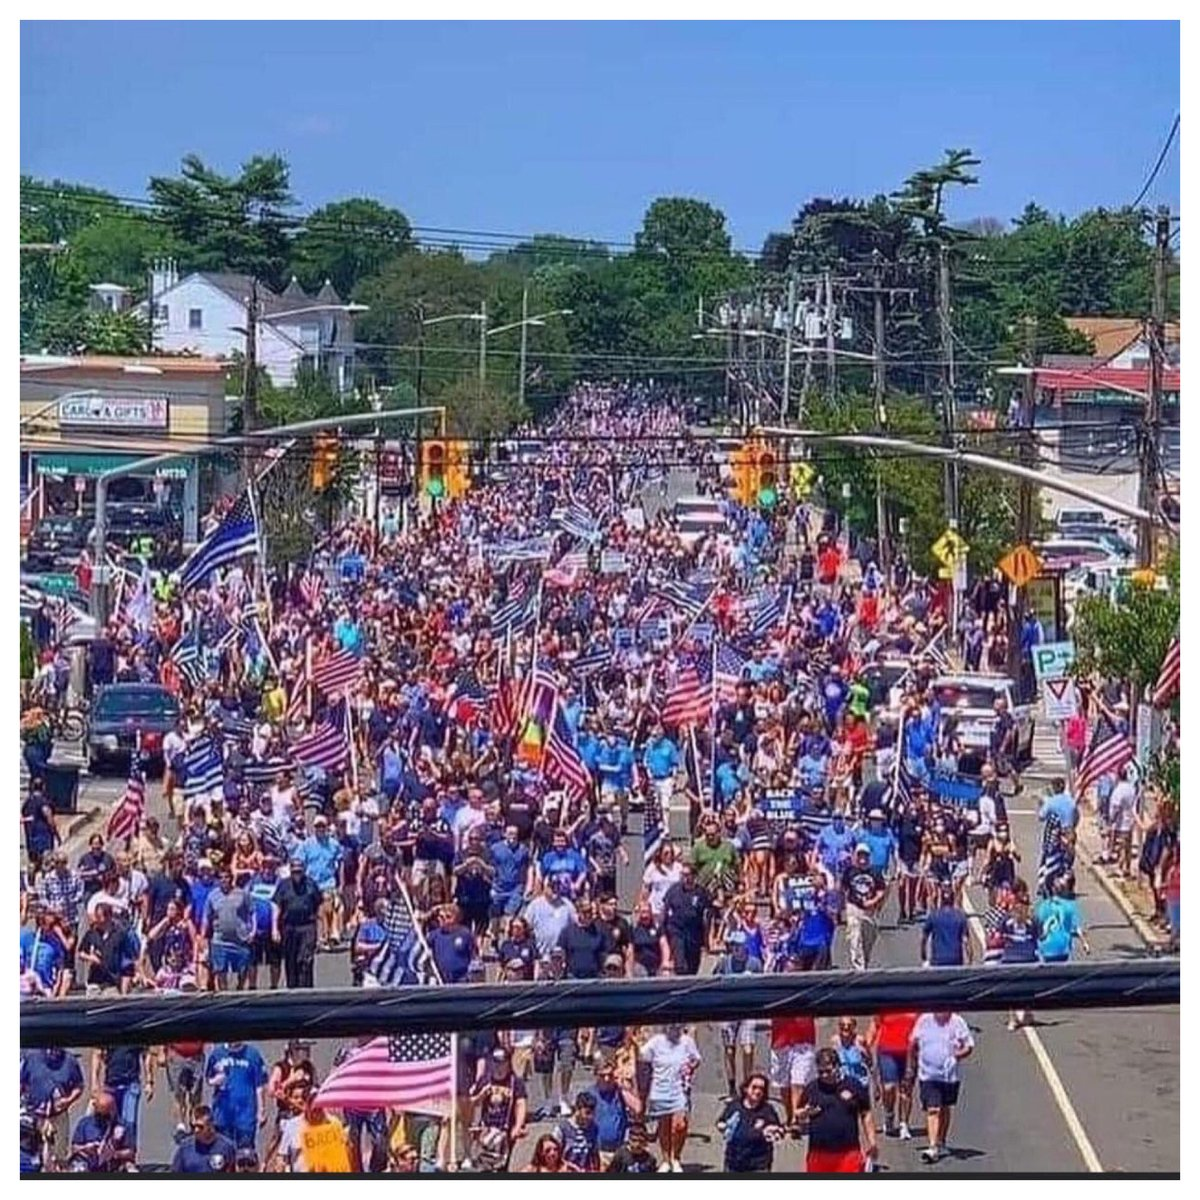 """WE NEED MORE OF THIS ACROSS AMERICA‼️ A Long Island town puts on a """"Pro Police"""" rally & parade, suppprting police. The """"silent majority"""" is no longer silent, pushing back against politicians jeopardizing citizens safety by defunding police on demands from the """"squeaky minority""""🇺🇸"""